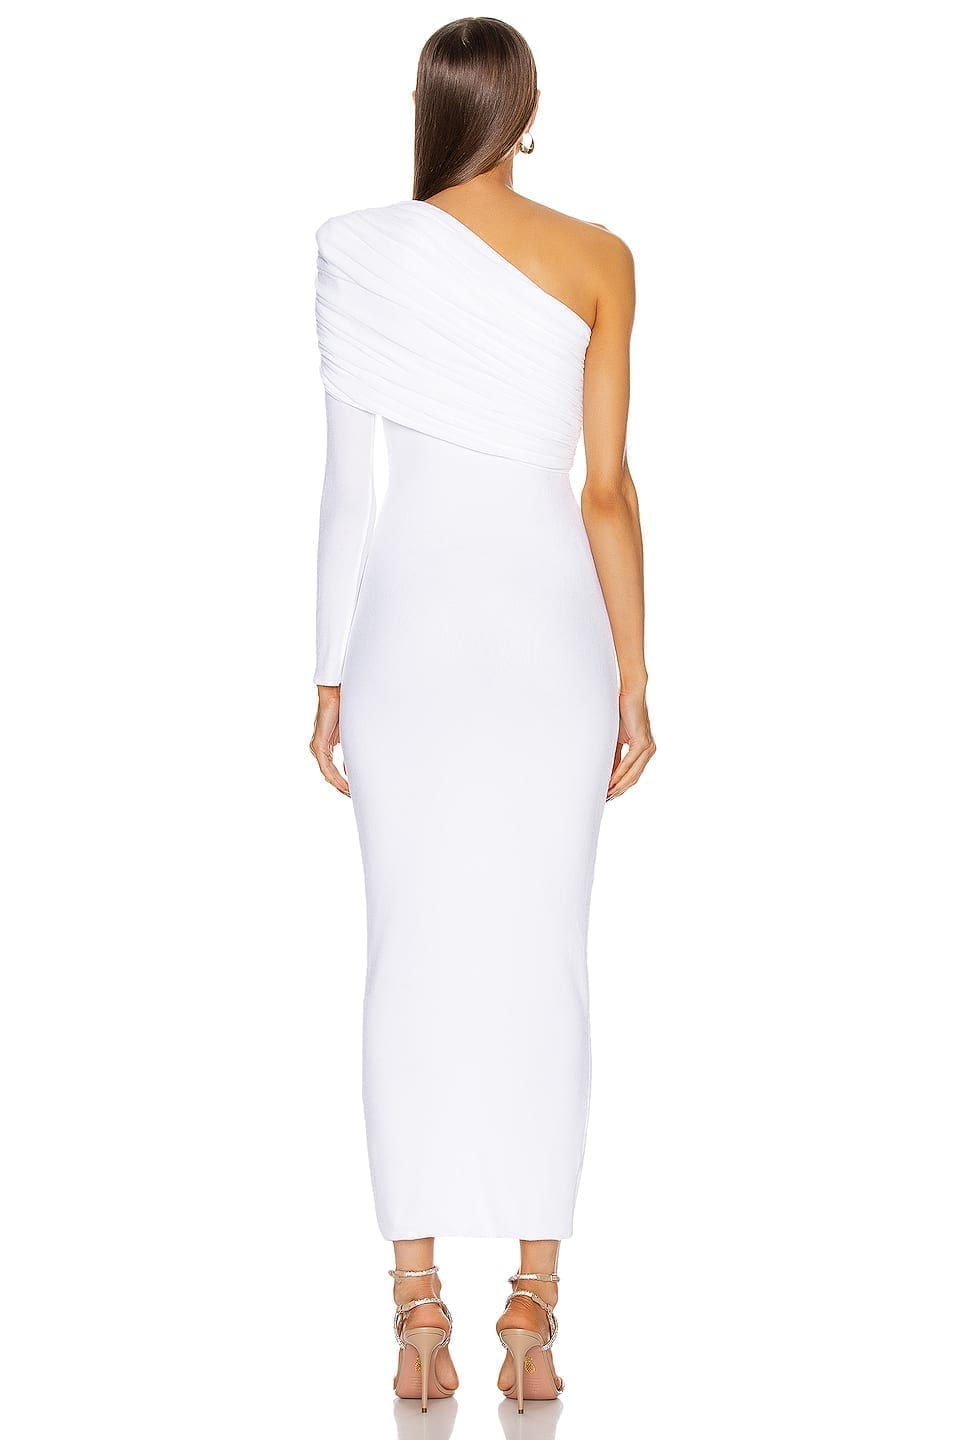 ALEXANDRE VAUTHIER Ruched One Shoulder Gown